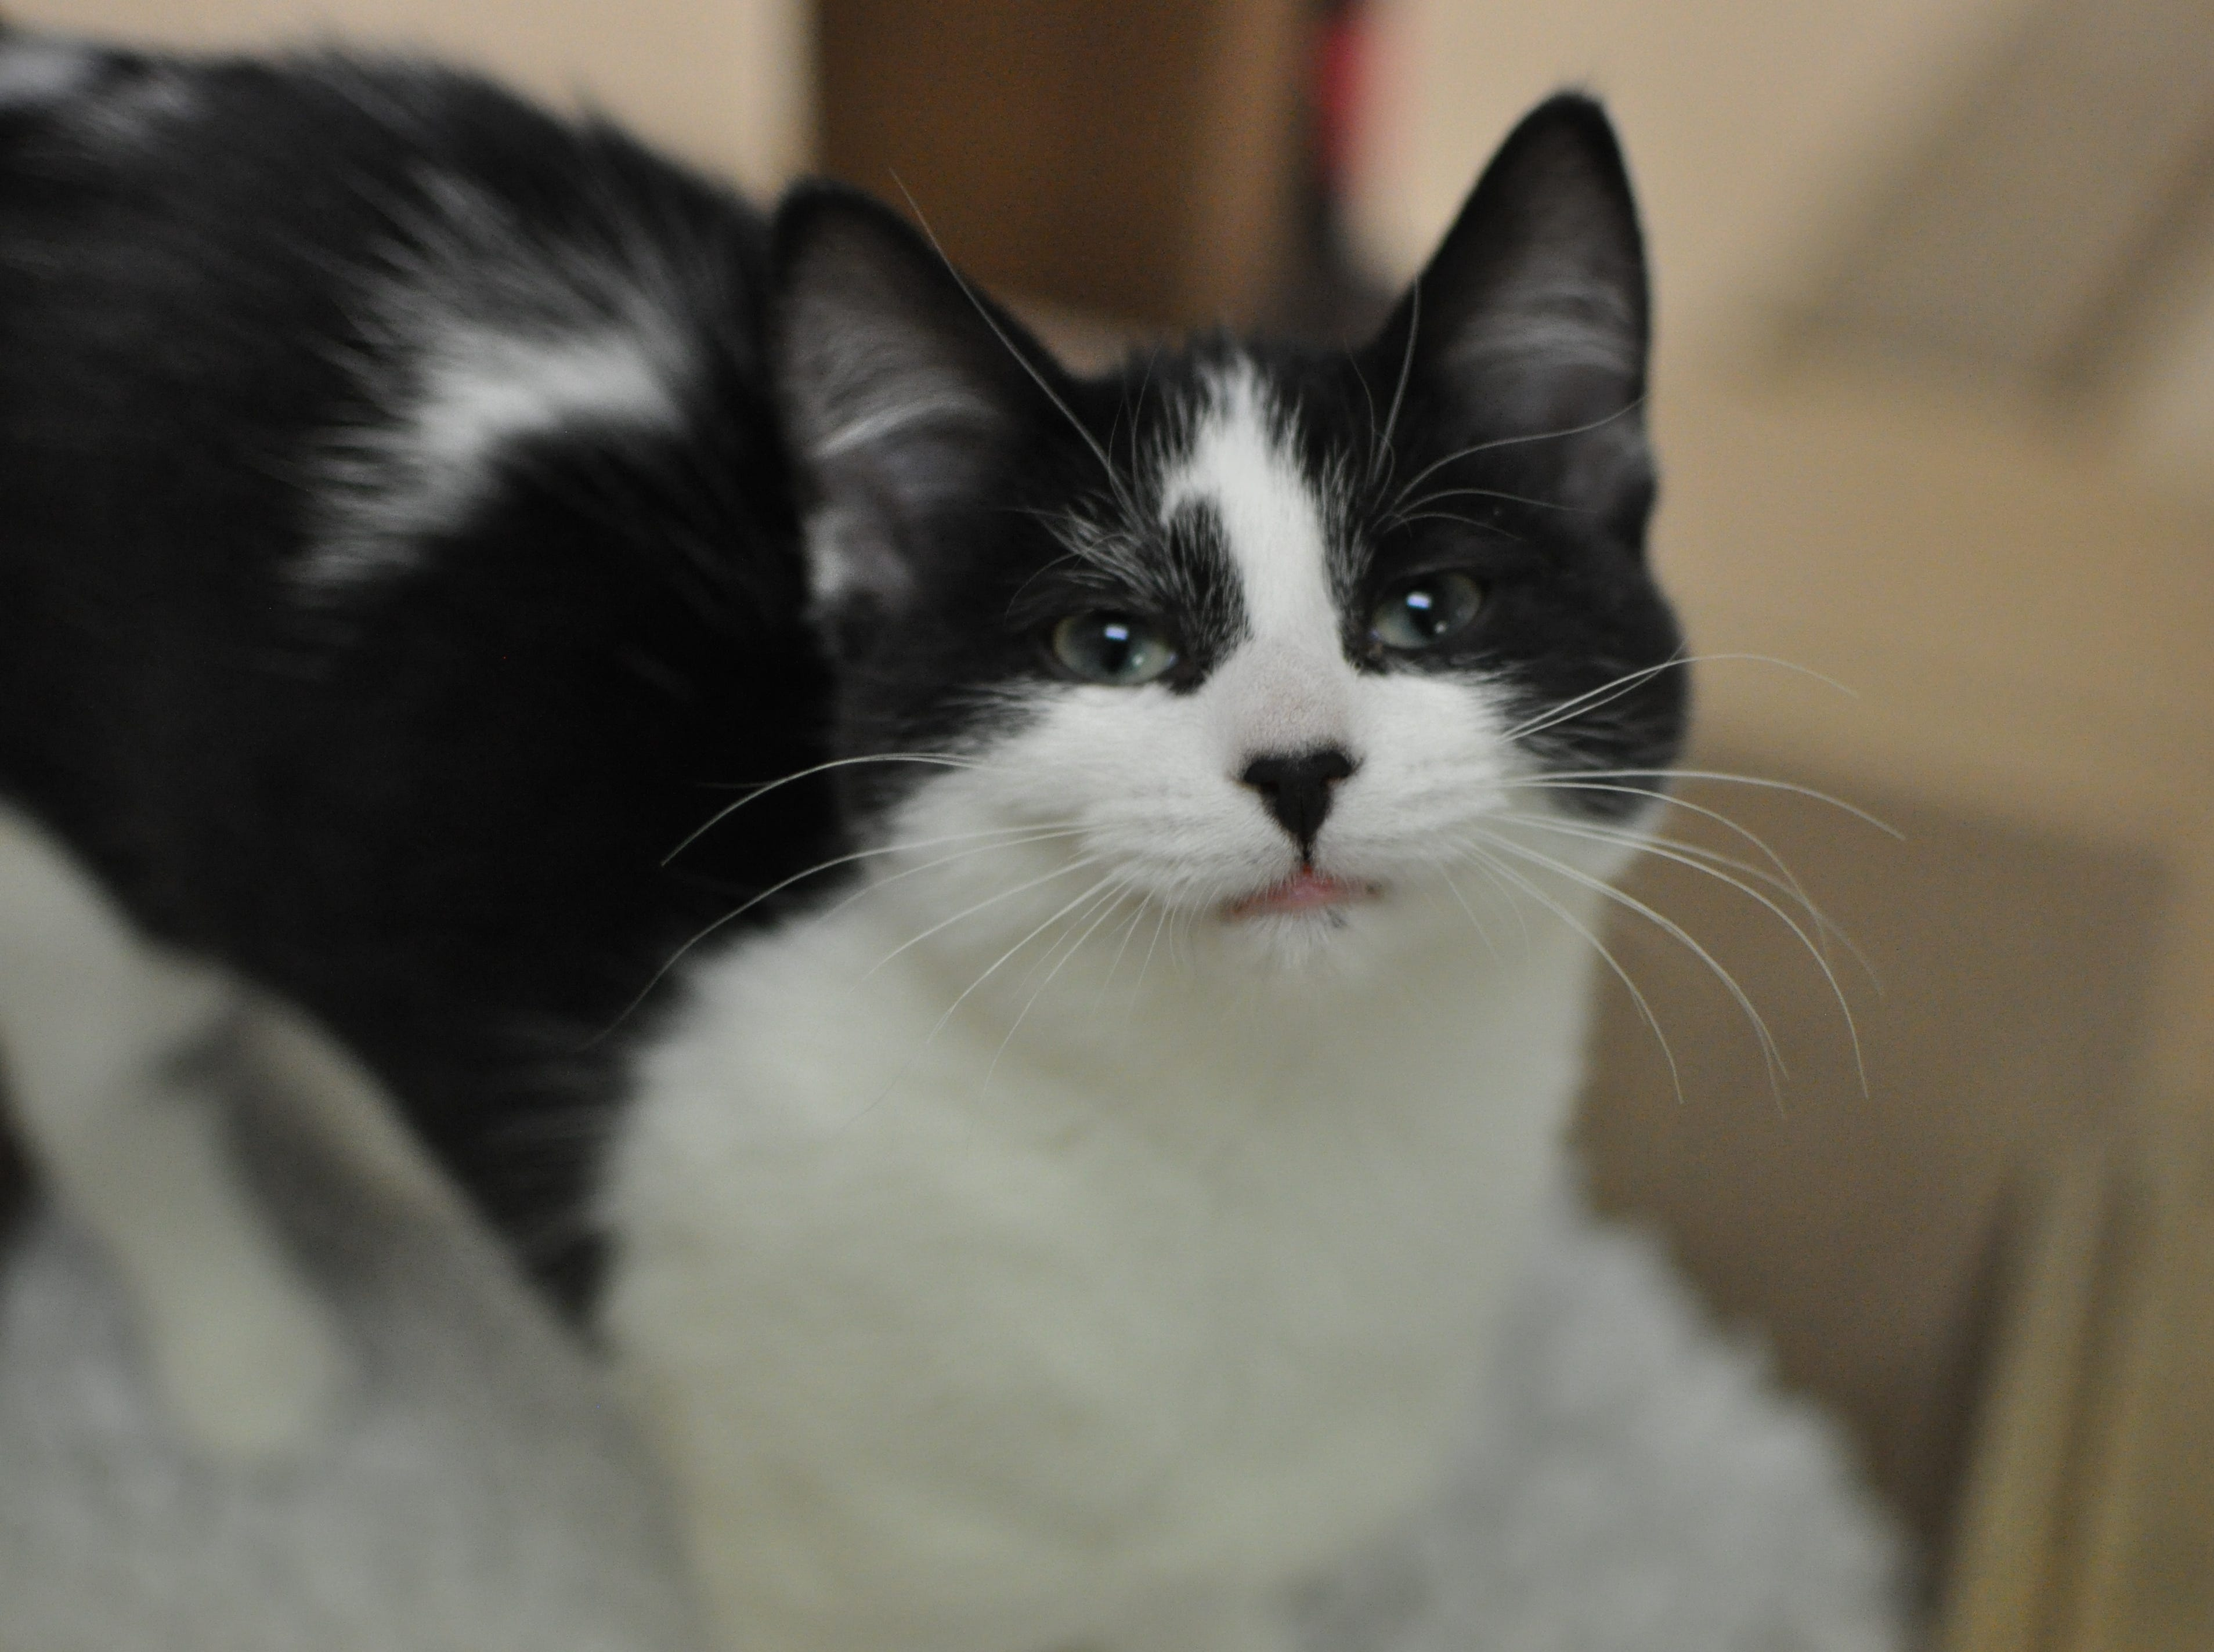 Mediterranean, 3 months, is friendly and outgoing and loves to play. She would love a cat buddy in her new home and is spayed.